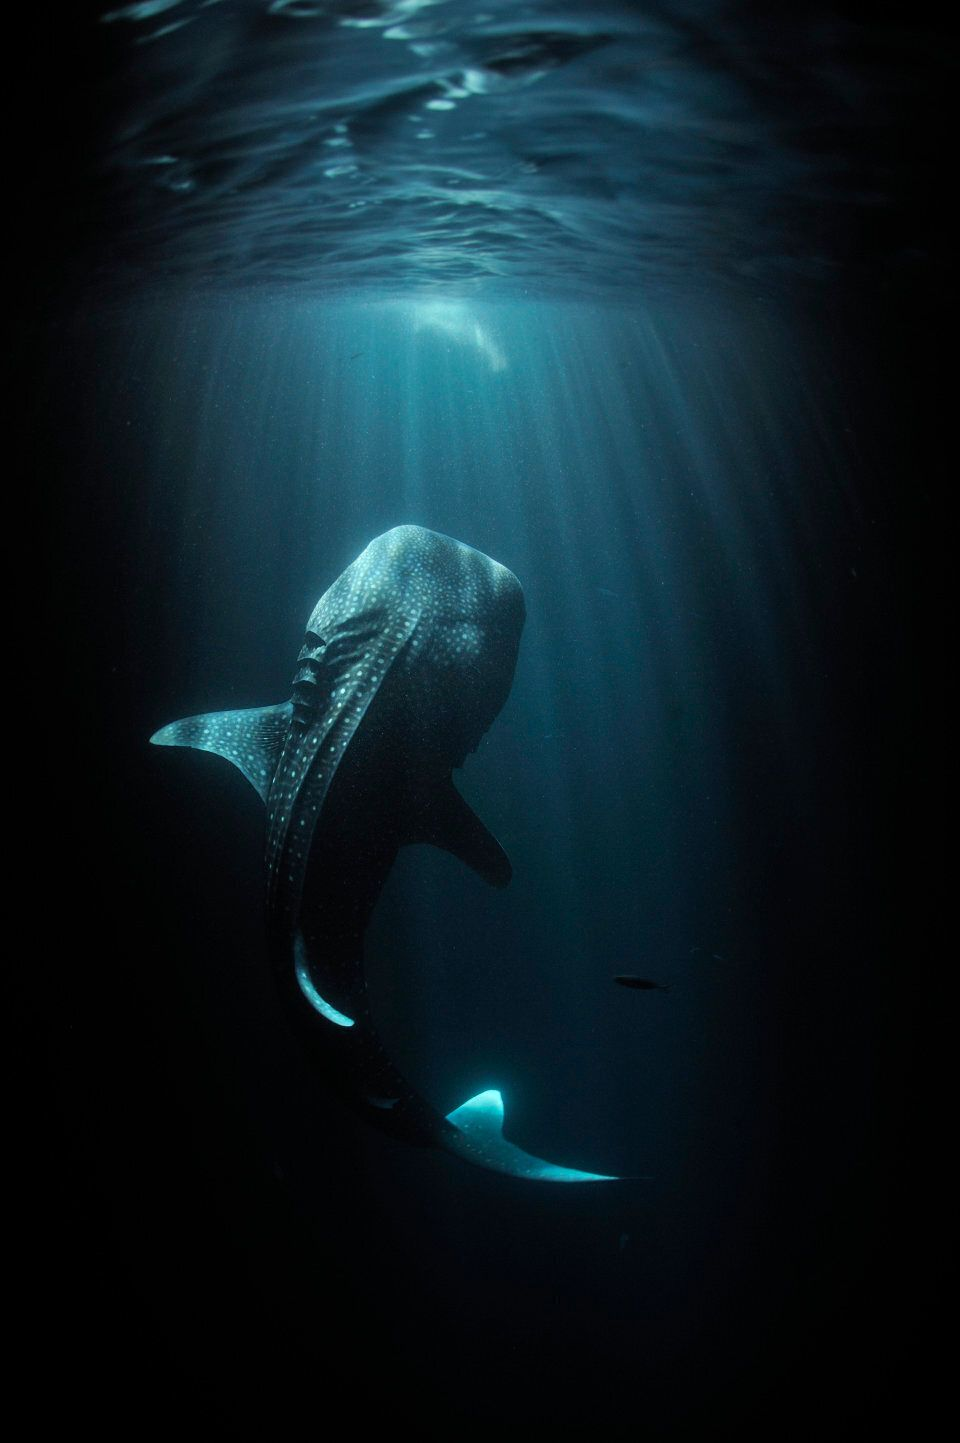 Fishermen's lights attract plankton which in turn attract a young whale